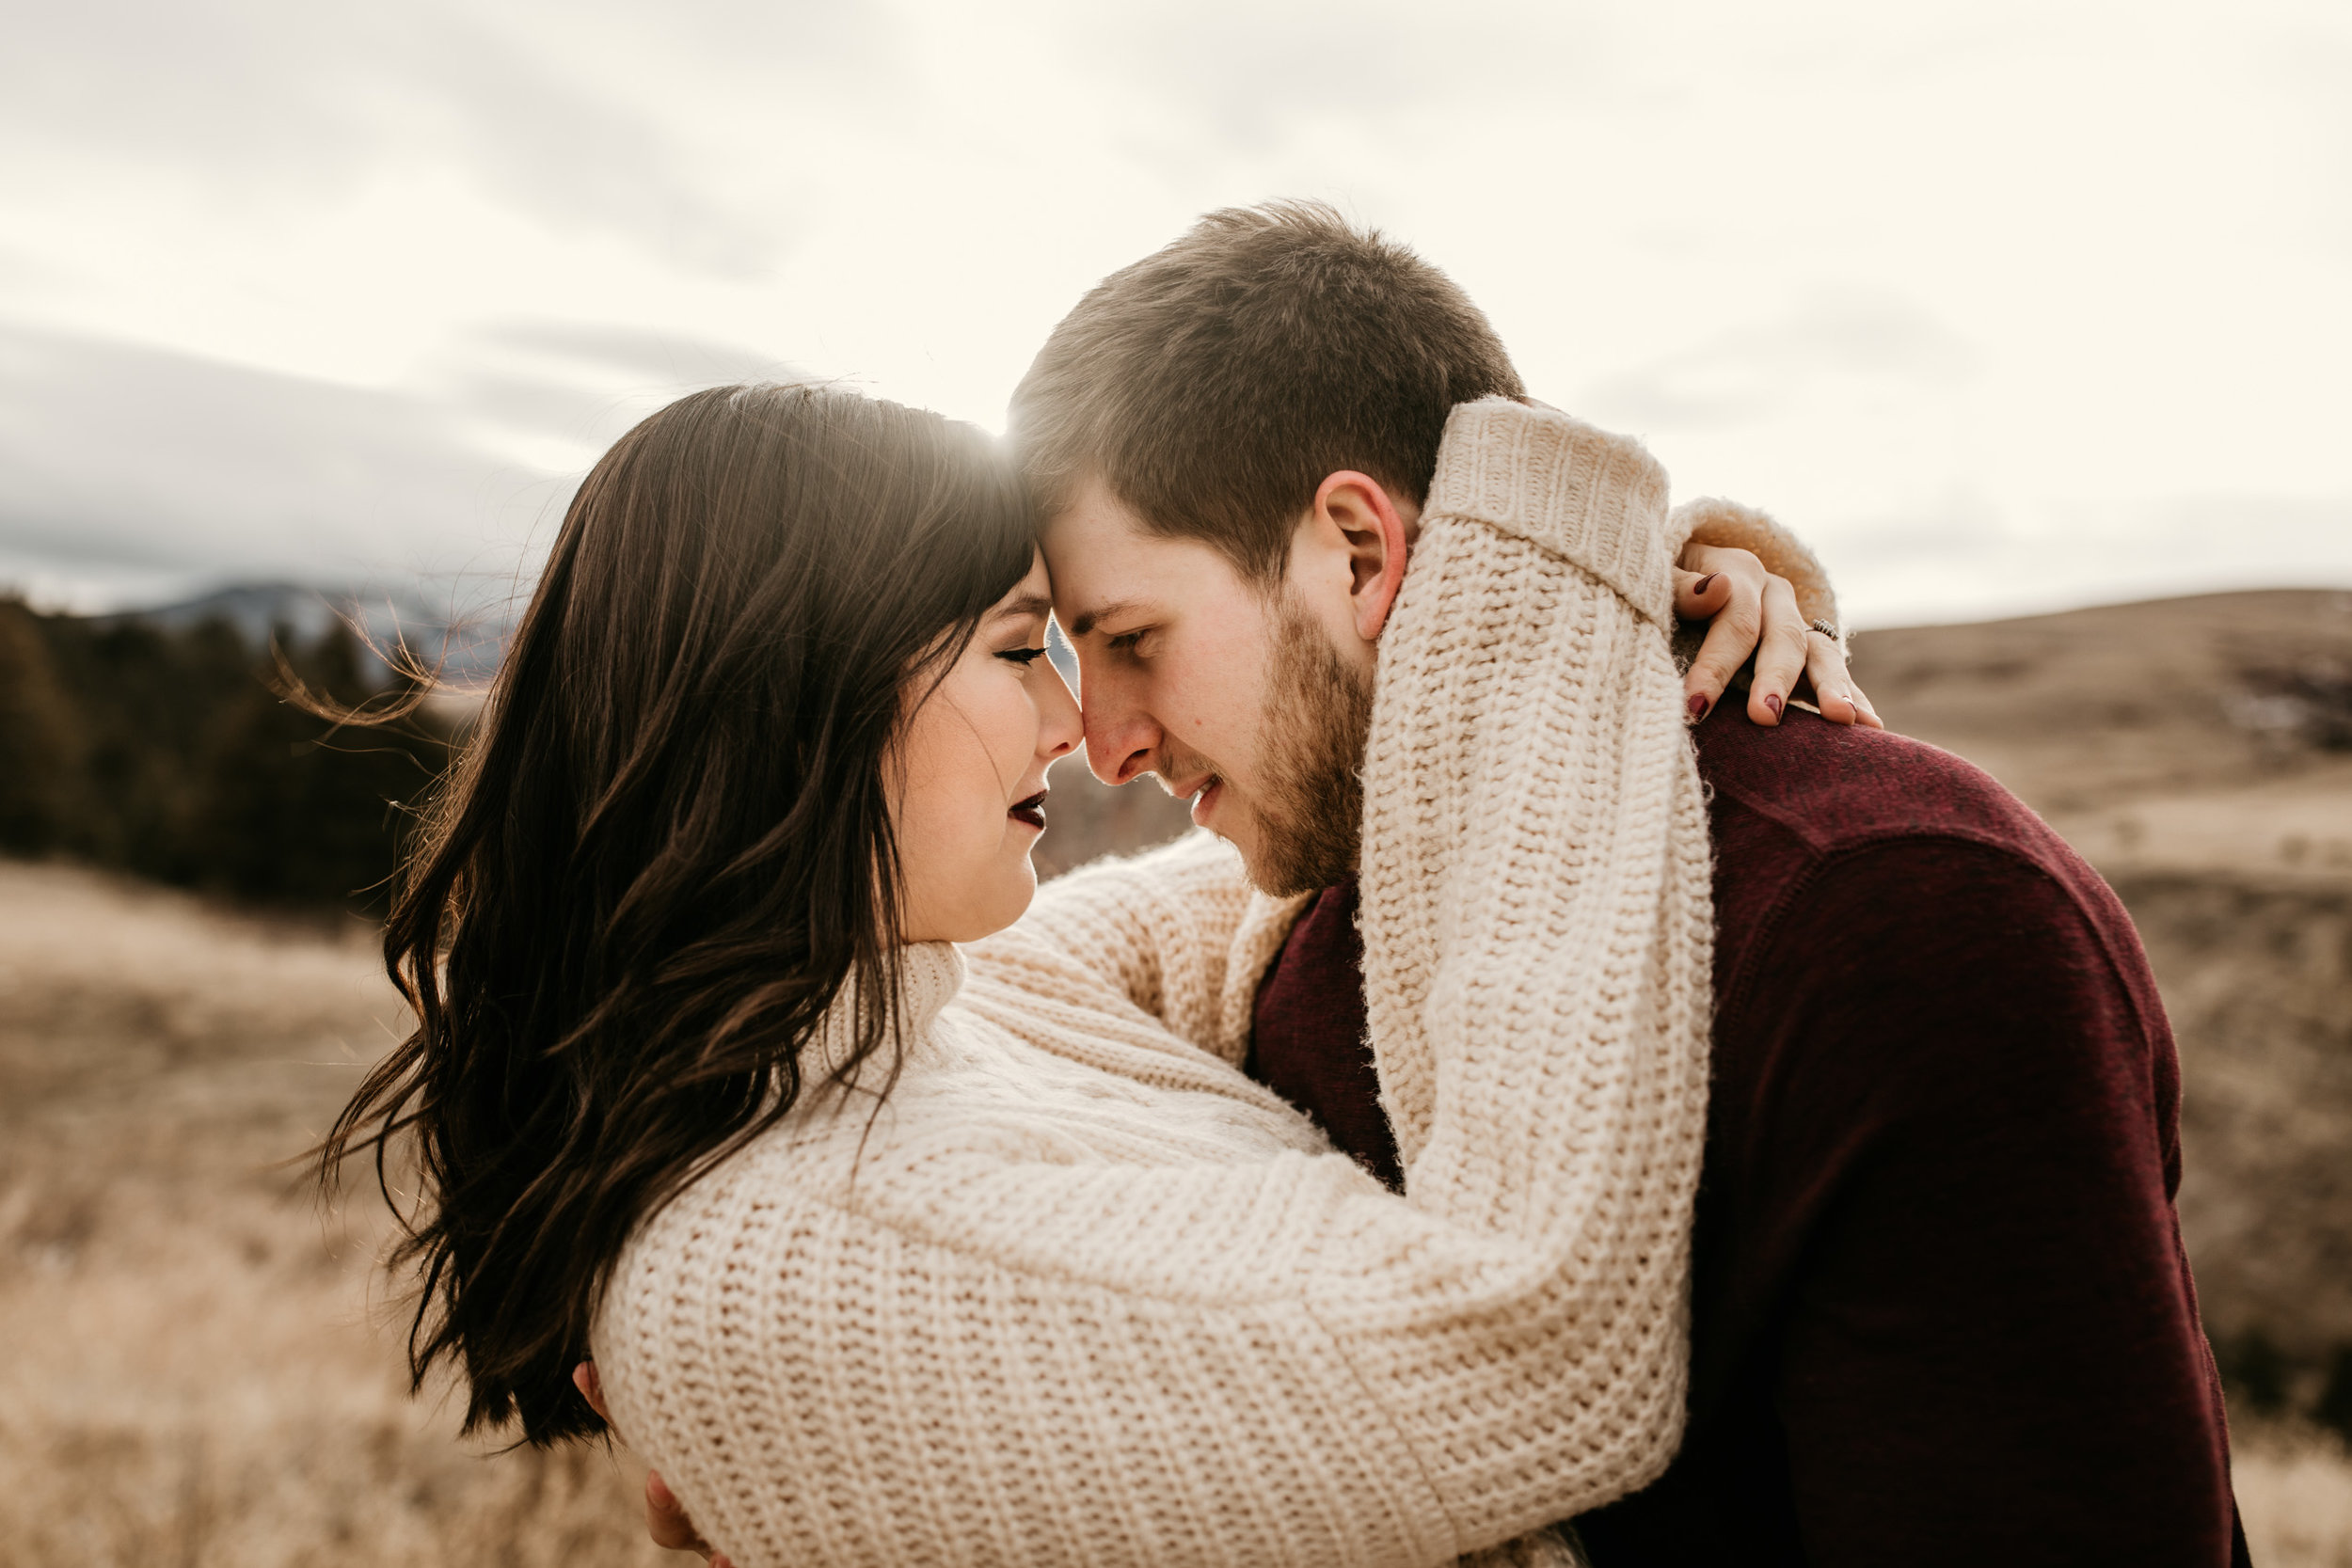 Molly-Trenton_Montana-Waterfall-Engagment-Session-39.jpg